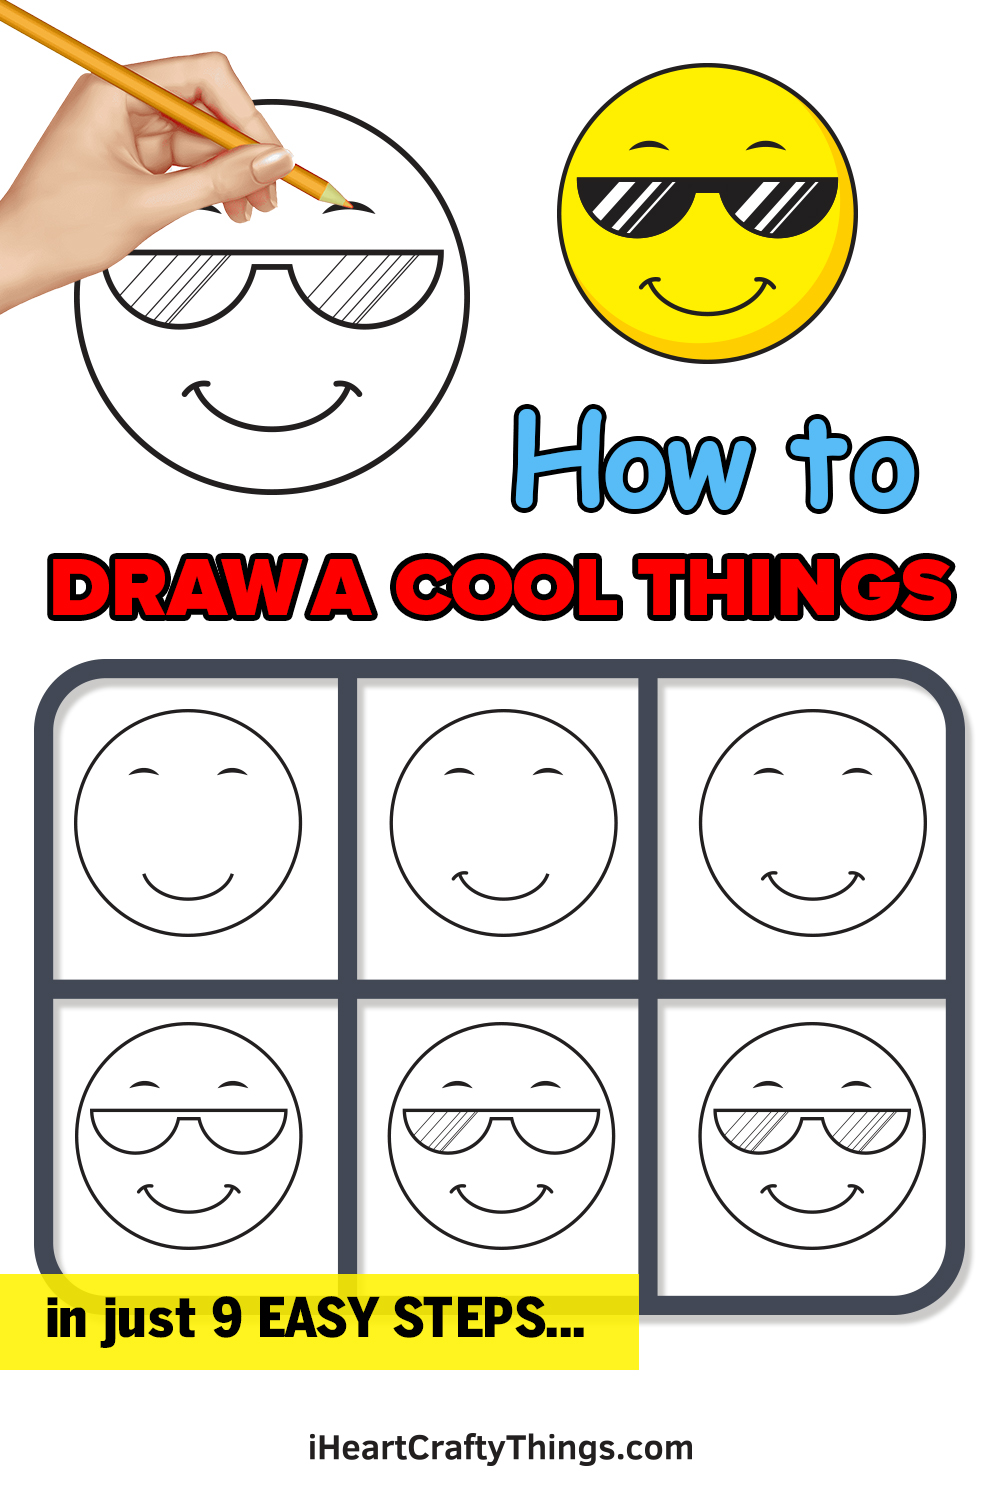 How to Draw Cool Things in 9 Easy Steps